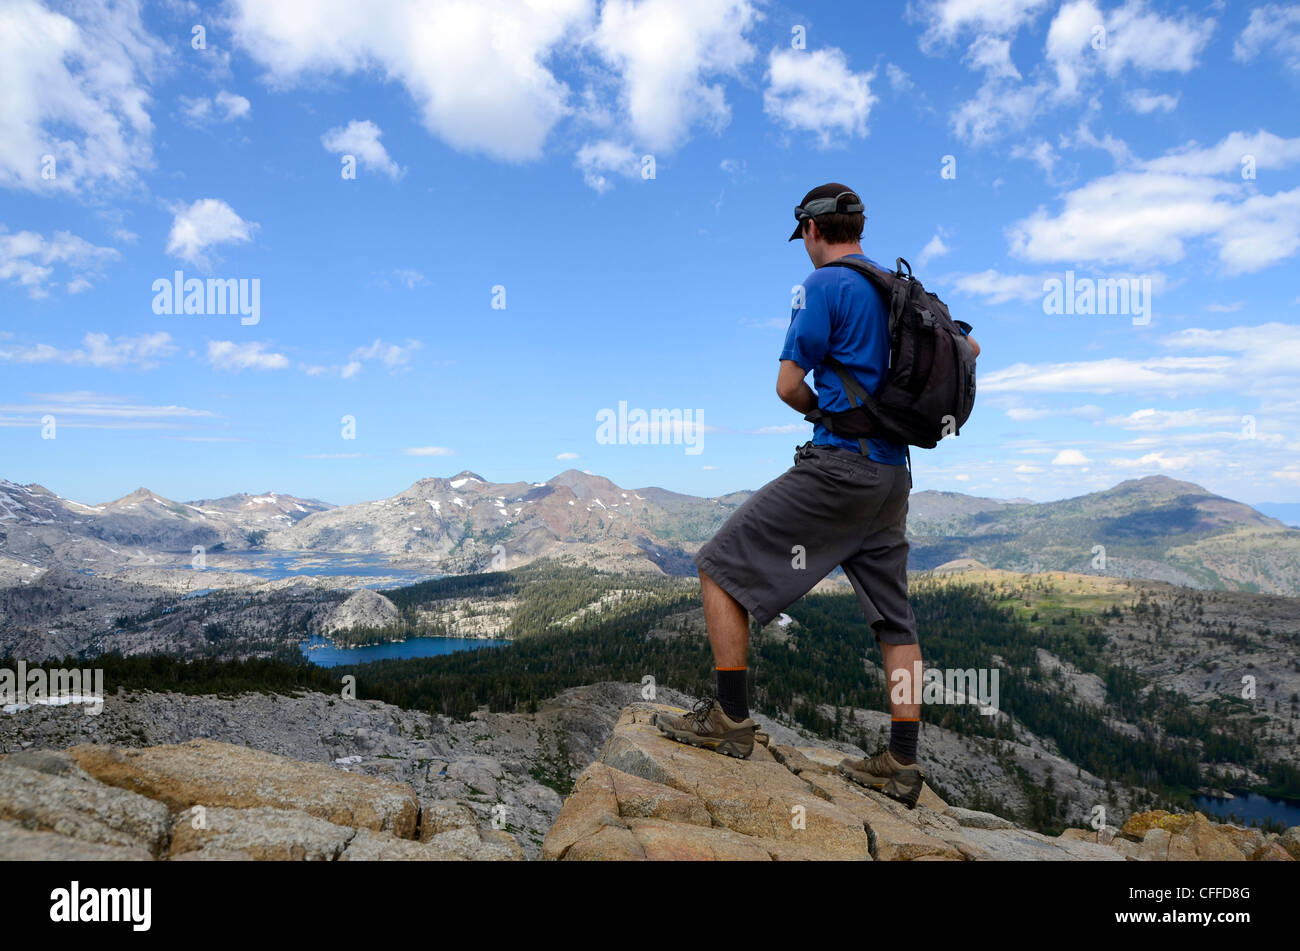 A male hiker stands on the summit of Mount Ralston looking over Desolation Wilderness in the summer, CA. - Stock Image